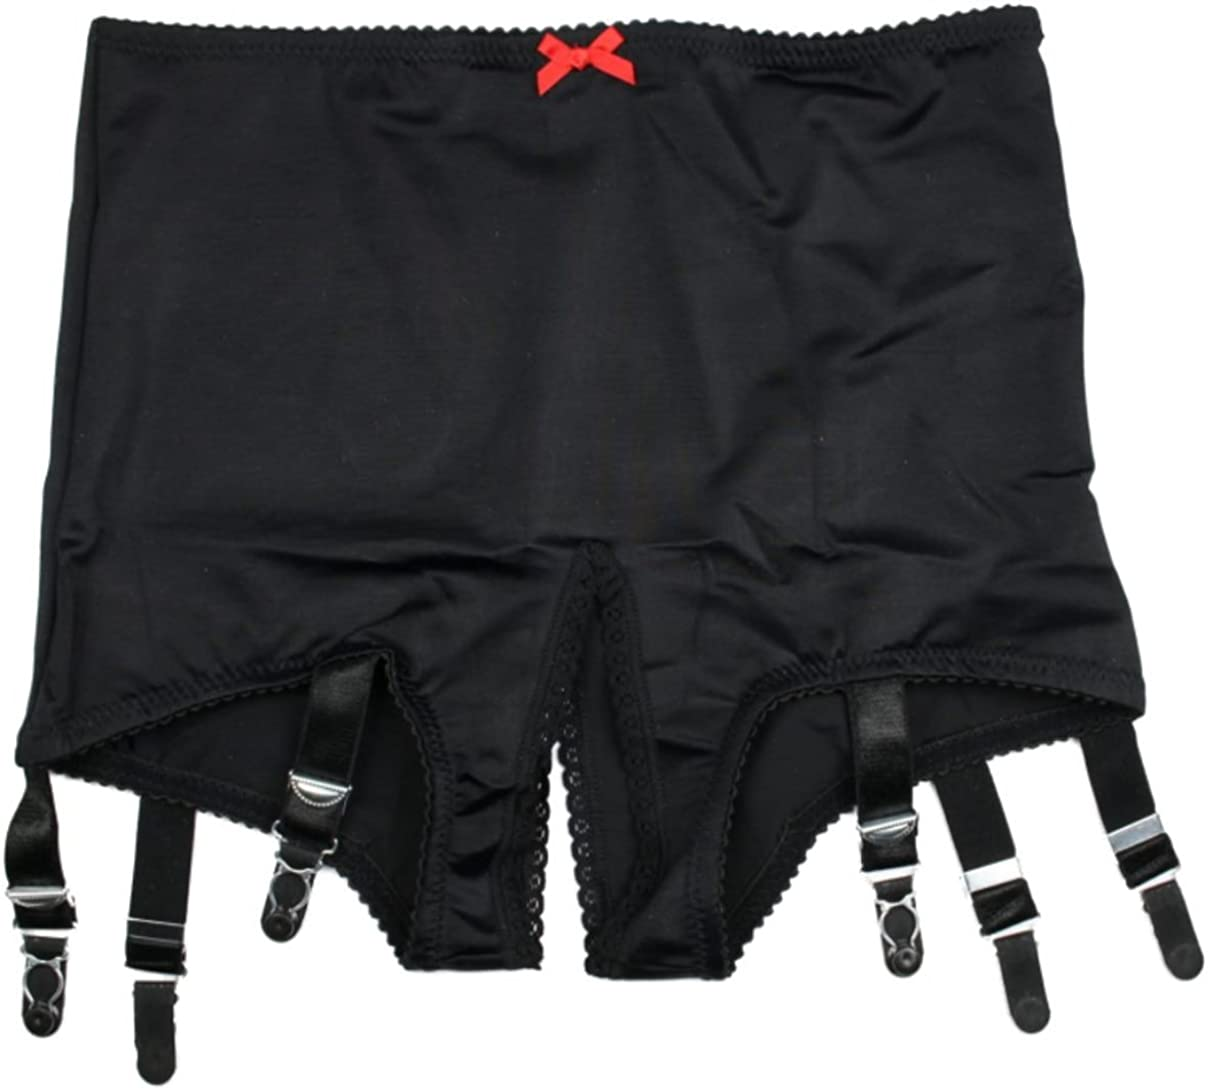 Nancies In a popularity Lingerie 'Crotchless' Ranking TOP8 Entice Girdle 6 Garter with Straps